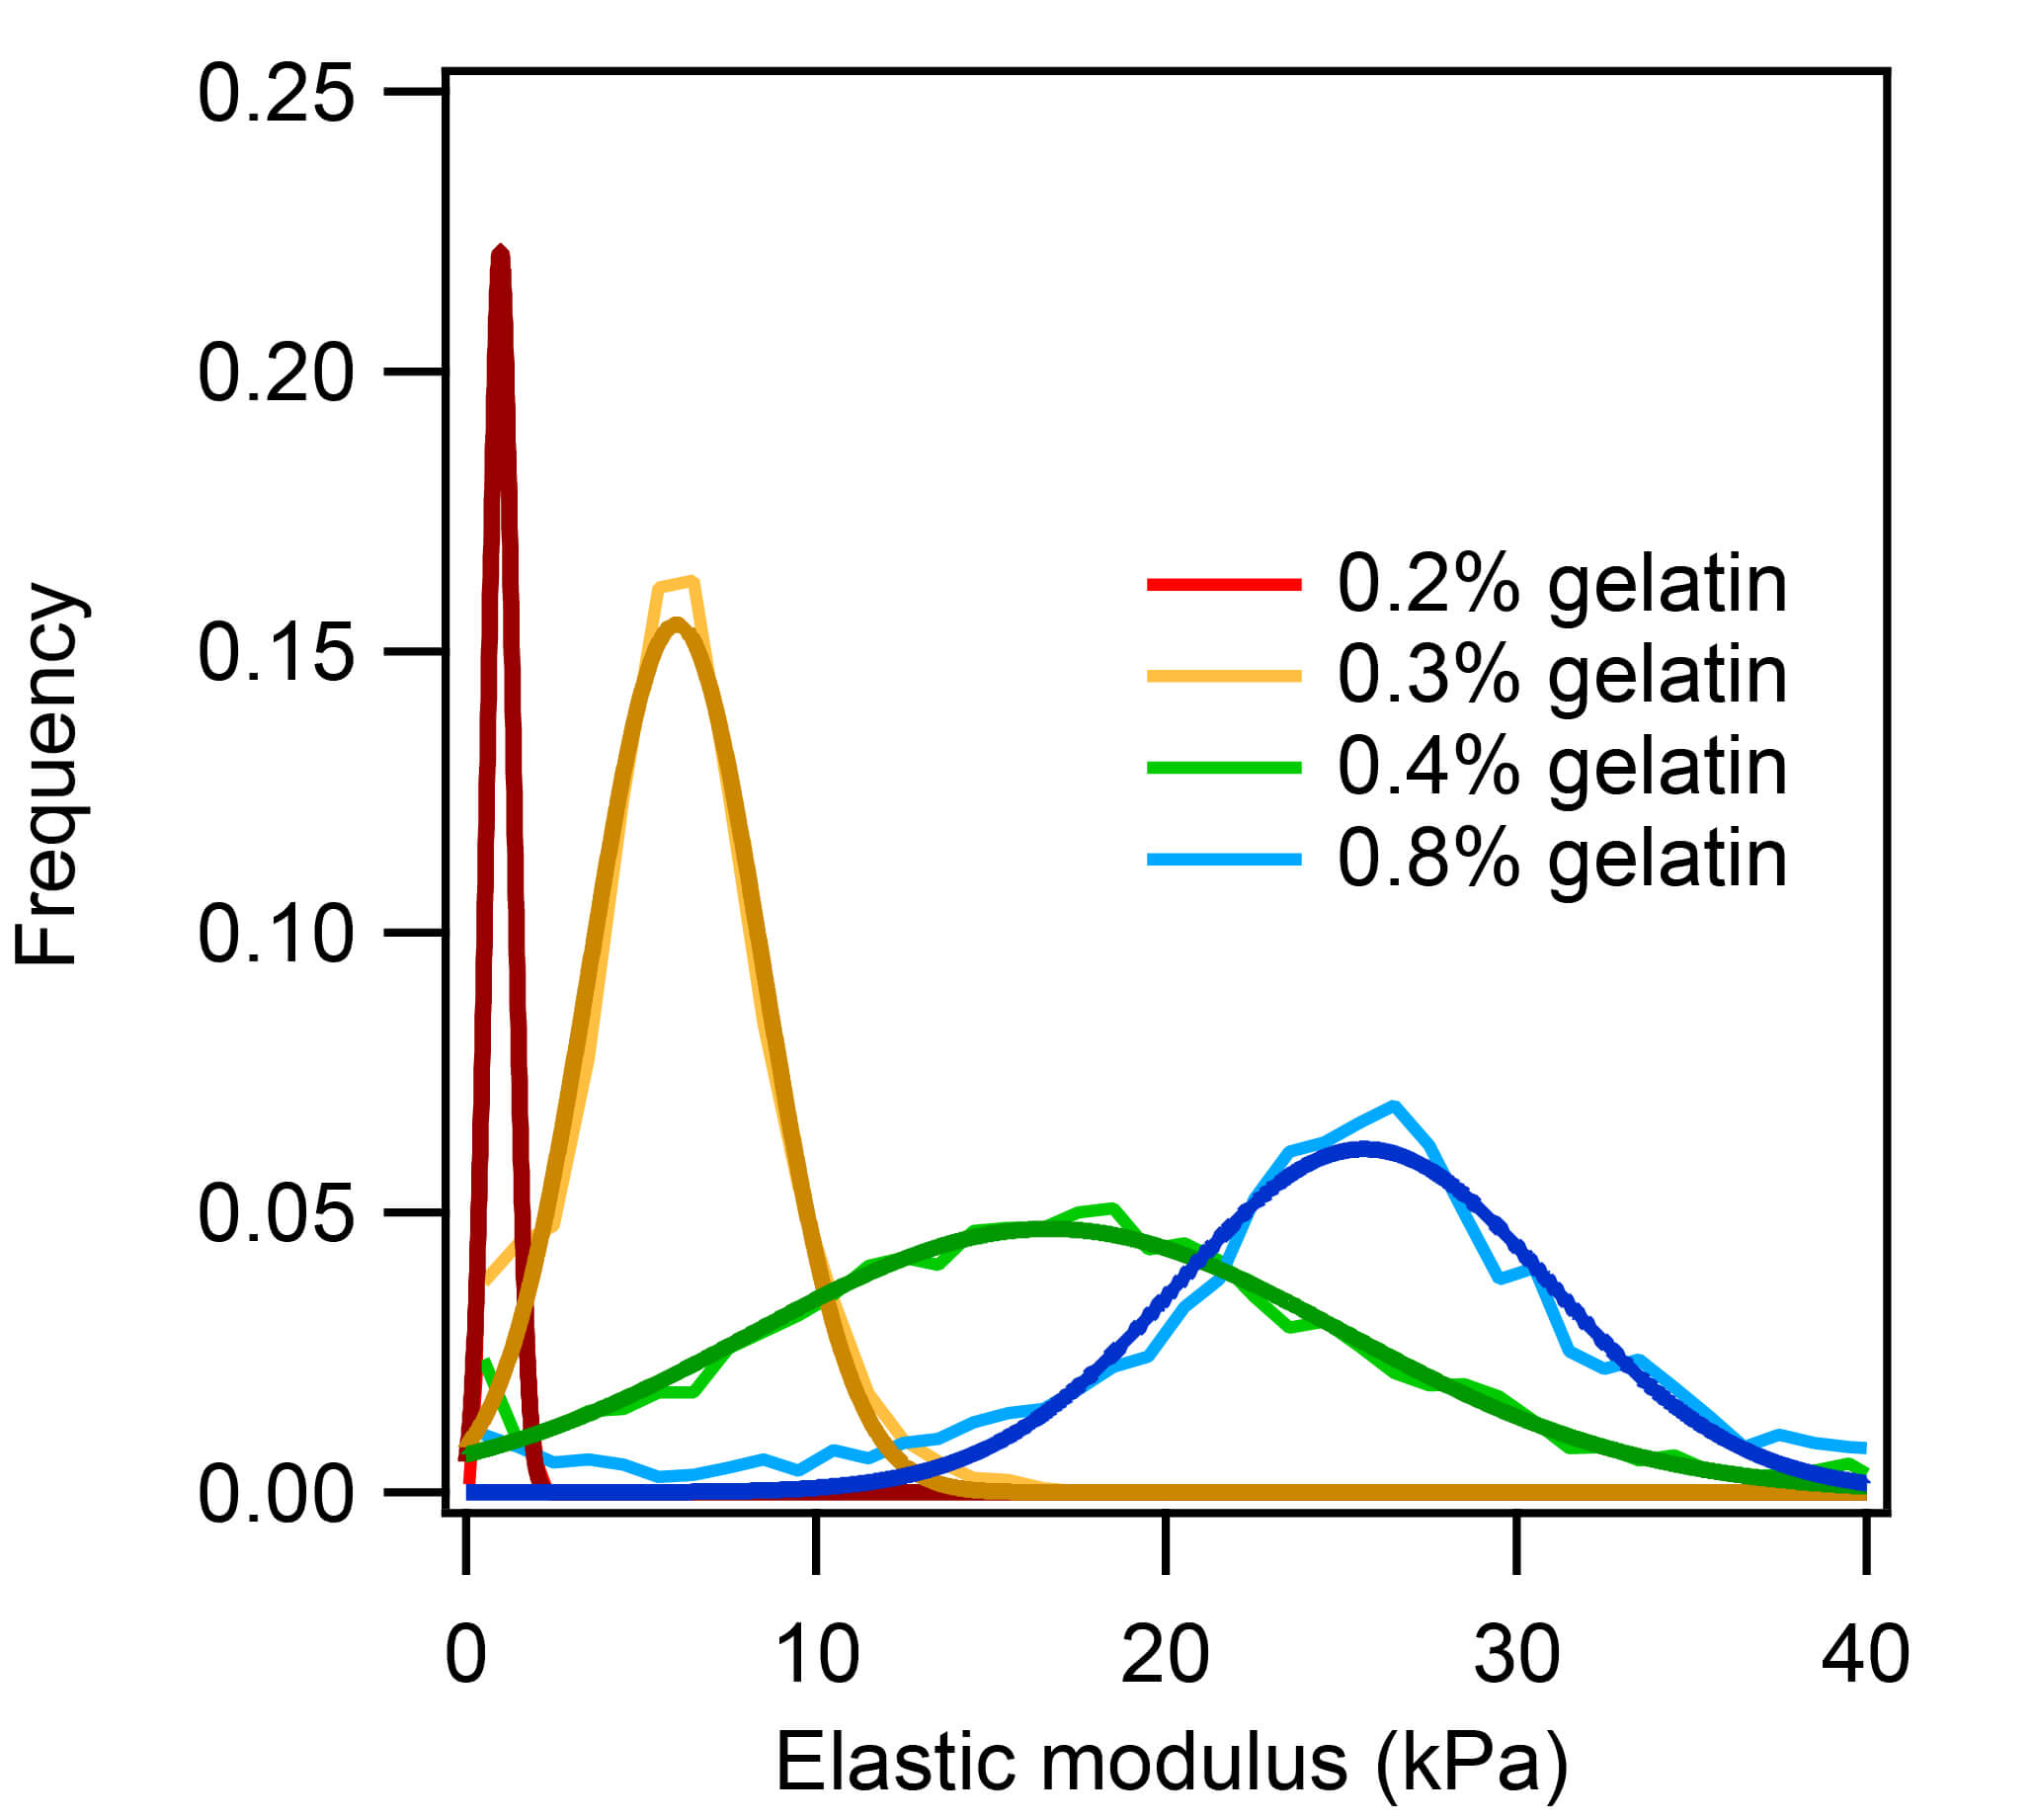 Elastic modulus distributions of four different gelatin hydrogels.